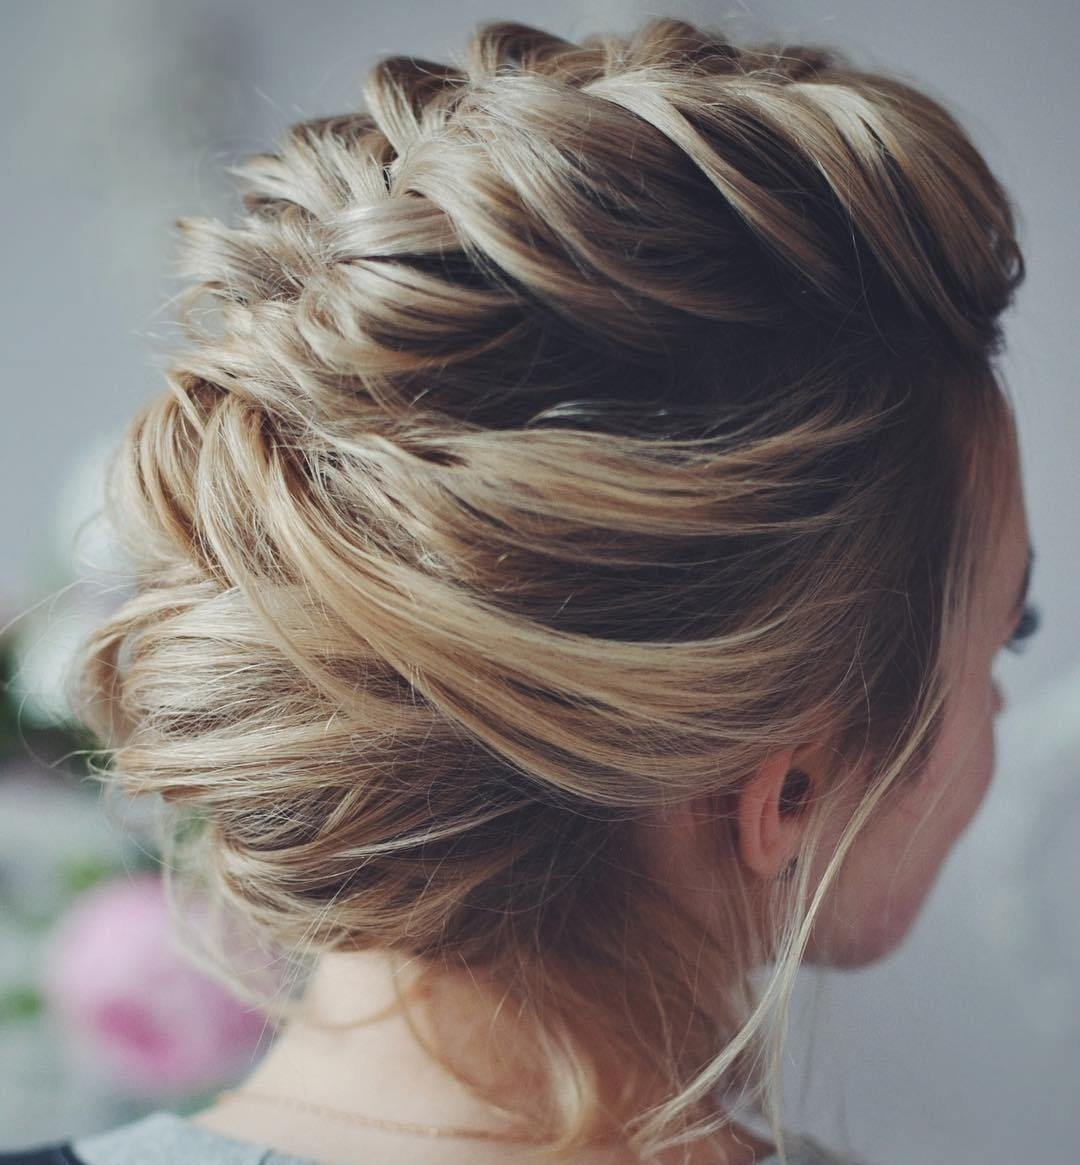 10 Beautiful Short Hair Ideas For Prom 50 hottest prom hairstyles for short hair 2020